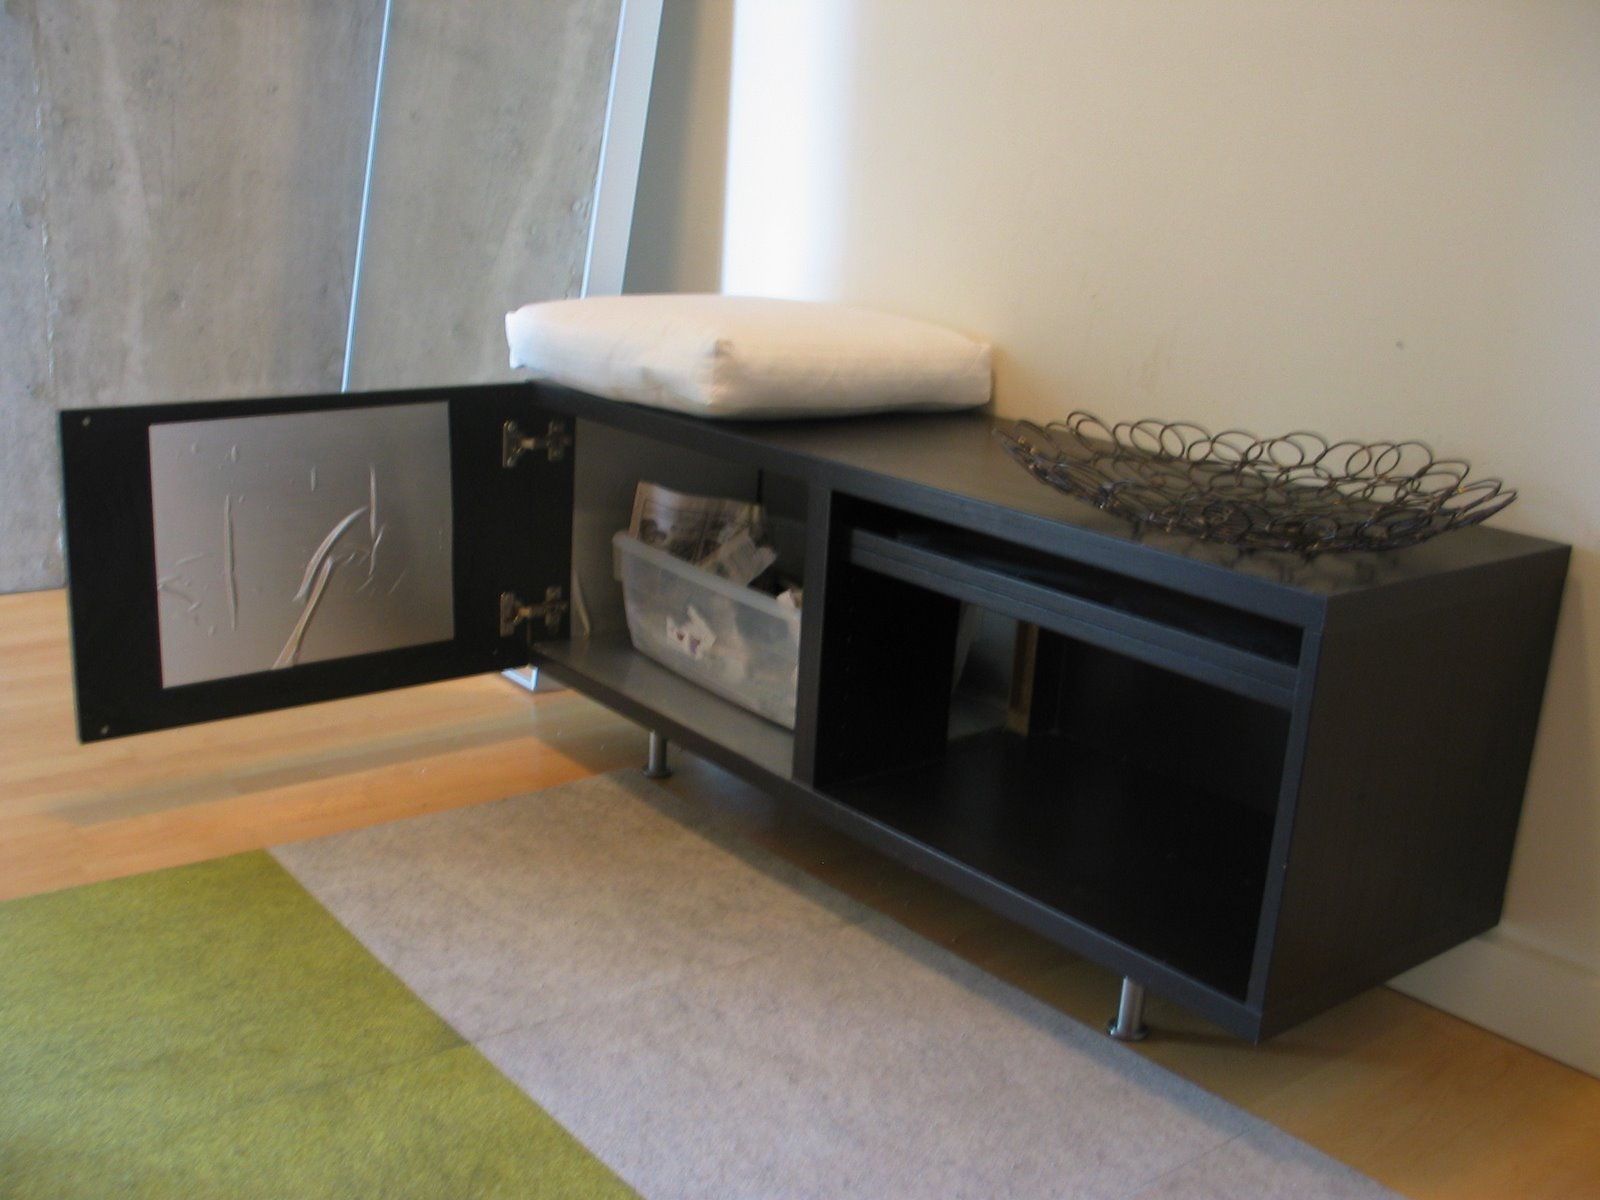 Black Wooden Cat Box With Carpet On Hardwood Floor With Ikea Litter Box  Cabinet